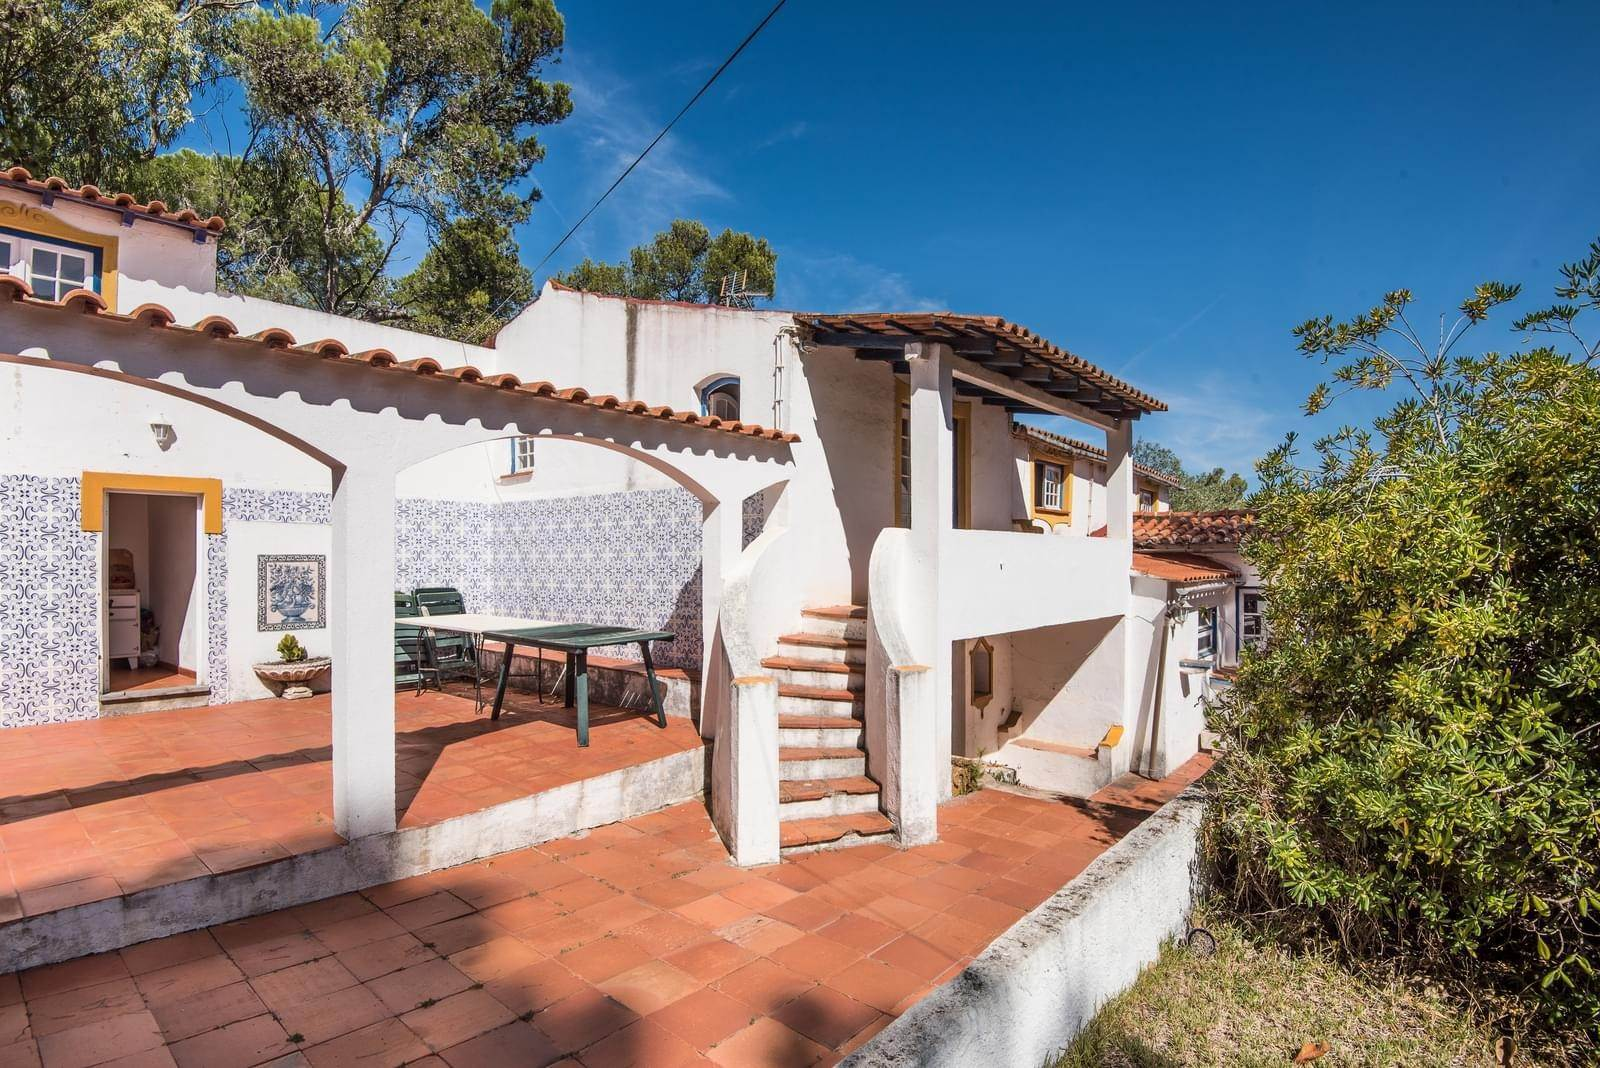 6. 別墅 / 联排别墅 為 出售 在 Unique property, located next to Quinta da Marinha, a quiet area.The property comprises six small villas, with deep refu... Cascais, 葡萄牙